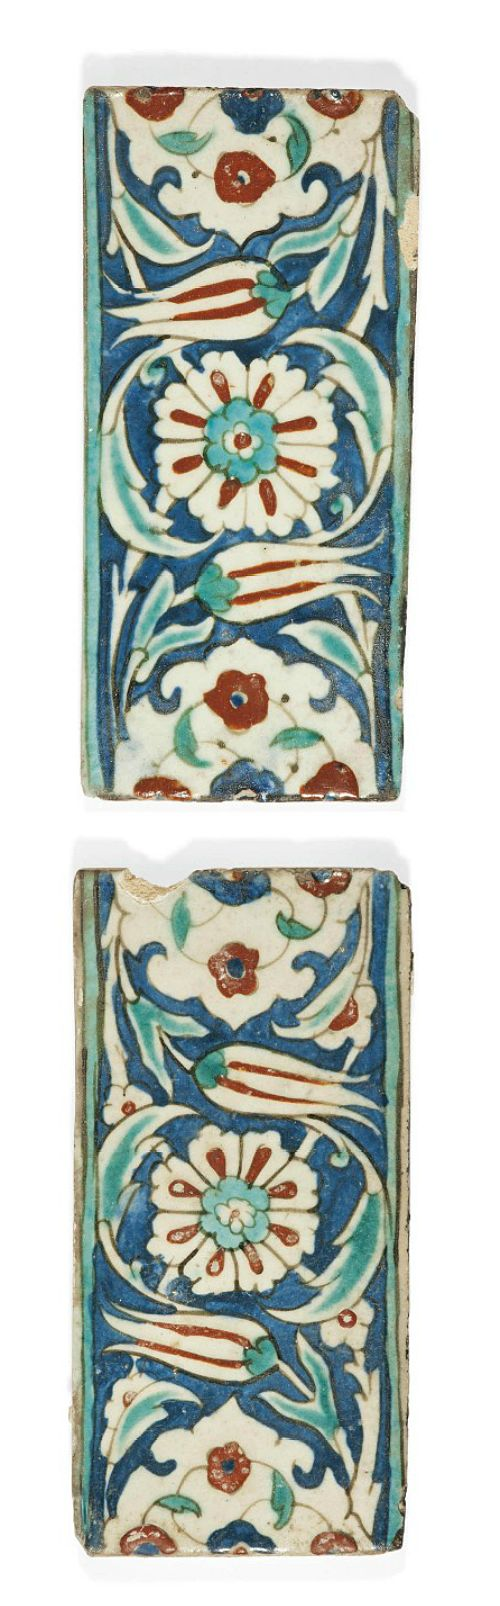 TWO IZNIK POTTERY BORDER TILES  OTTOMAN TURKEY, CIRCA 1600  Each of rectangular form, with design of composite flowers, tulips and scrolling palmettes reserved against cobalt-blue ground, with red highlights, with turquoise-blue borders, small chips, otherwise intact Each 5 x 10 1/8in. (12.8 x 25.7cm.)